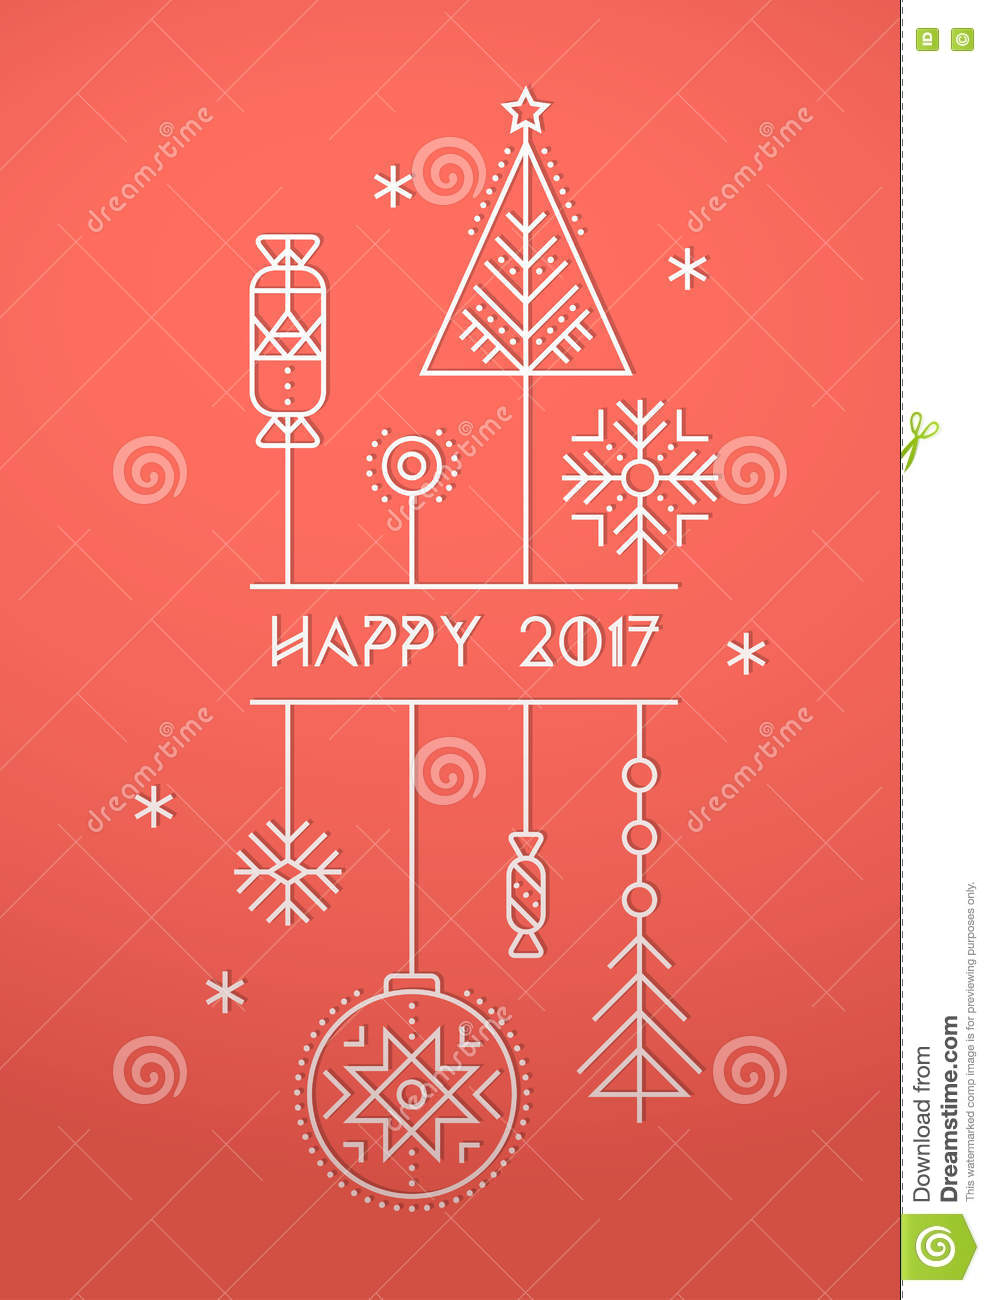 Merry christmas and happy new year greeting card template stock merry christmas and happy new year greeting card template m4hsunfo